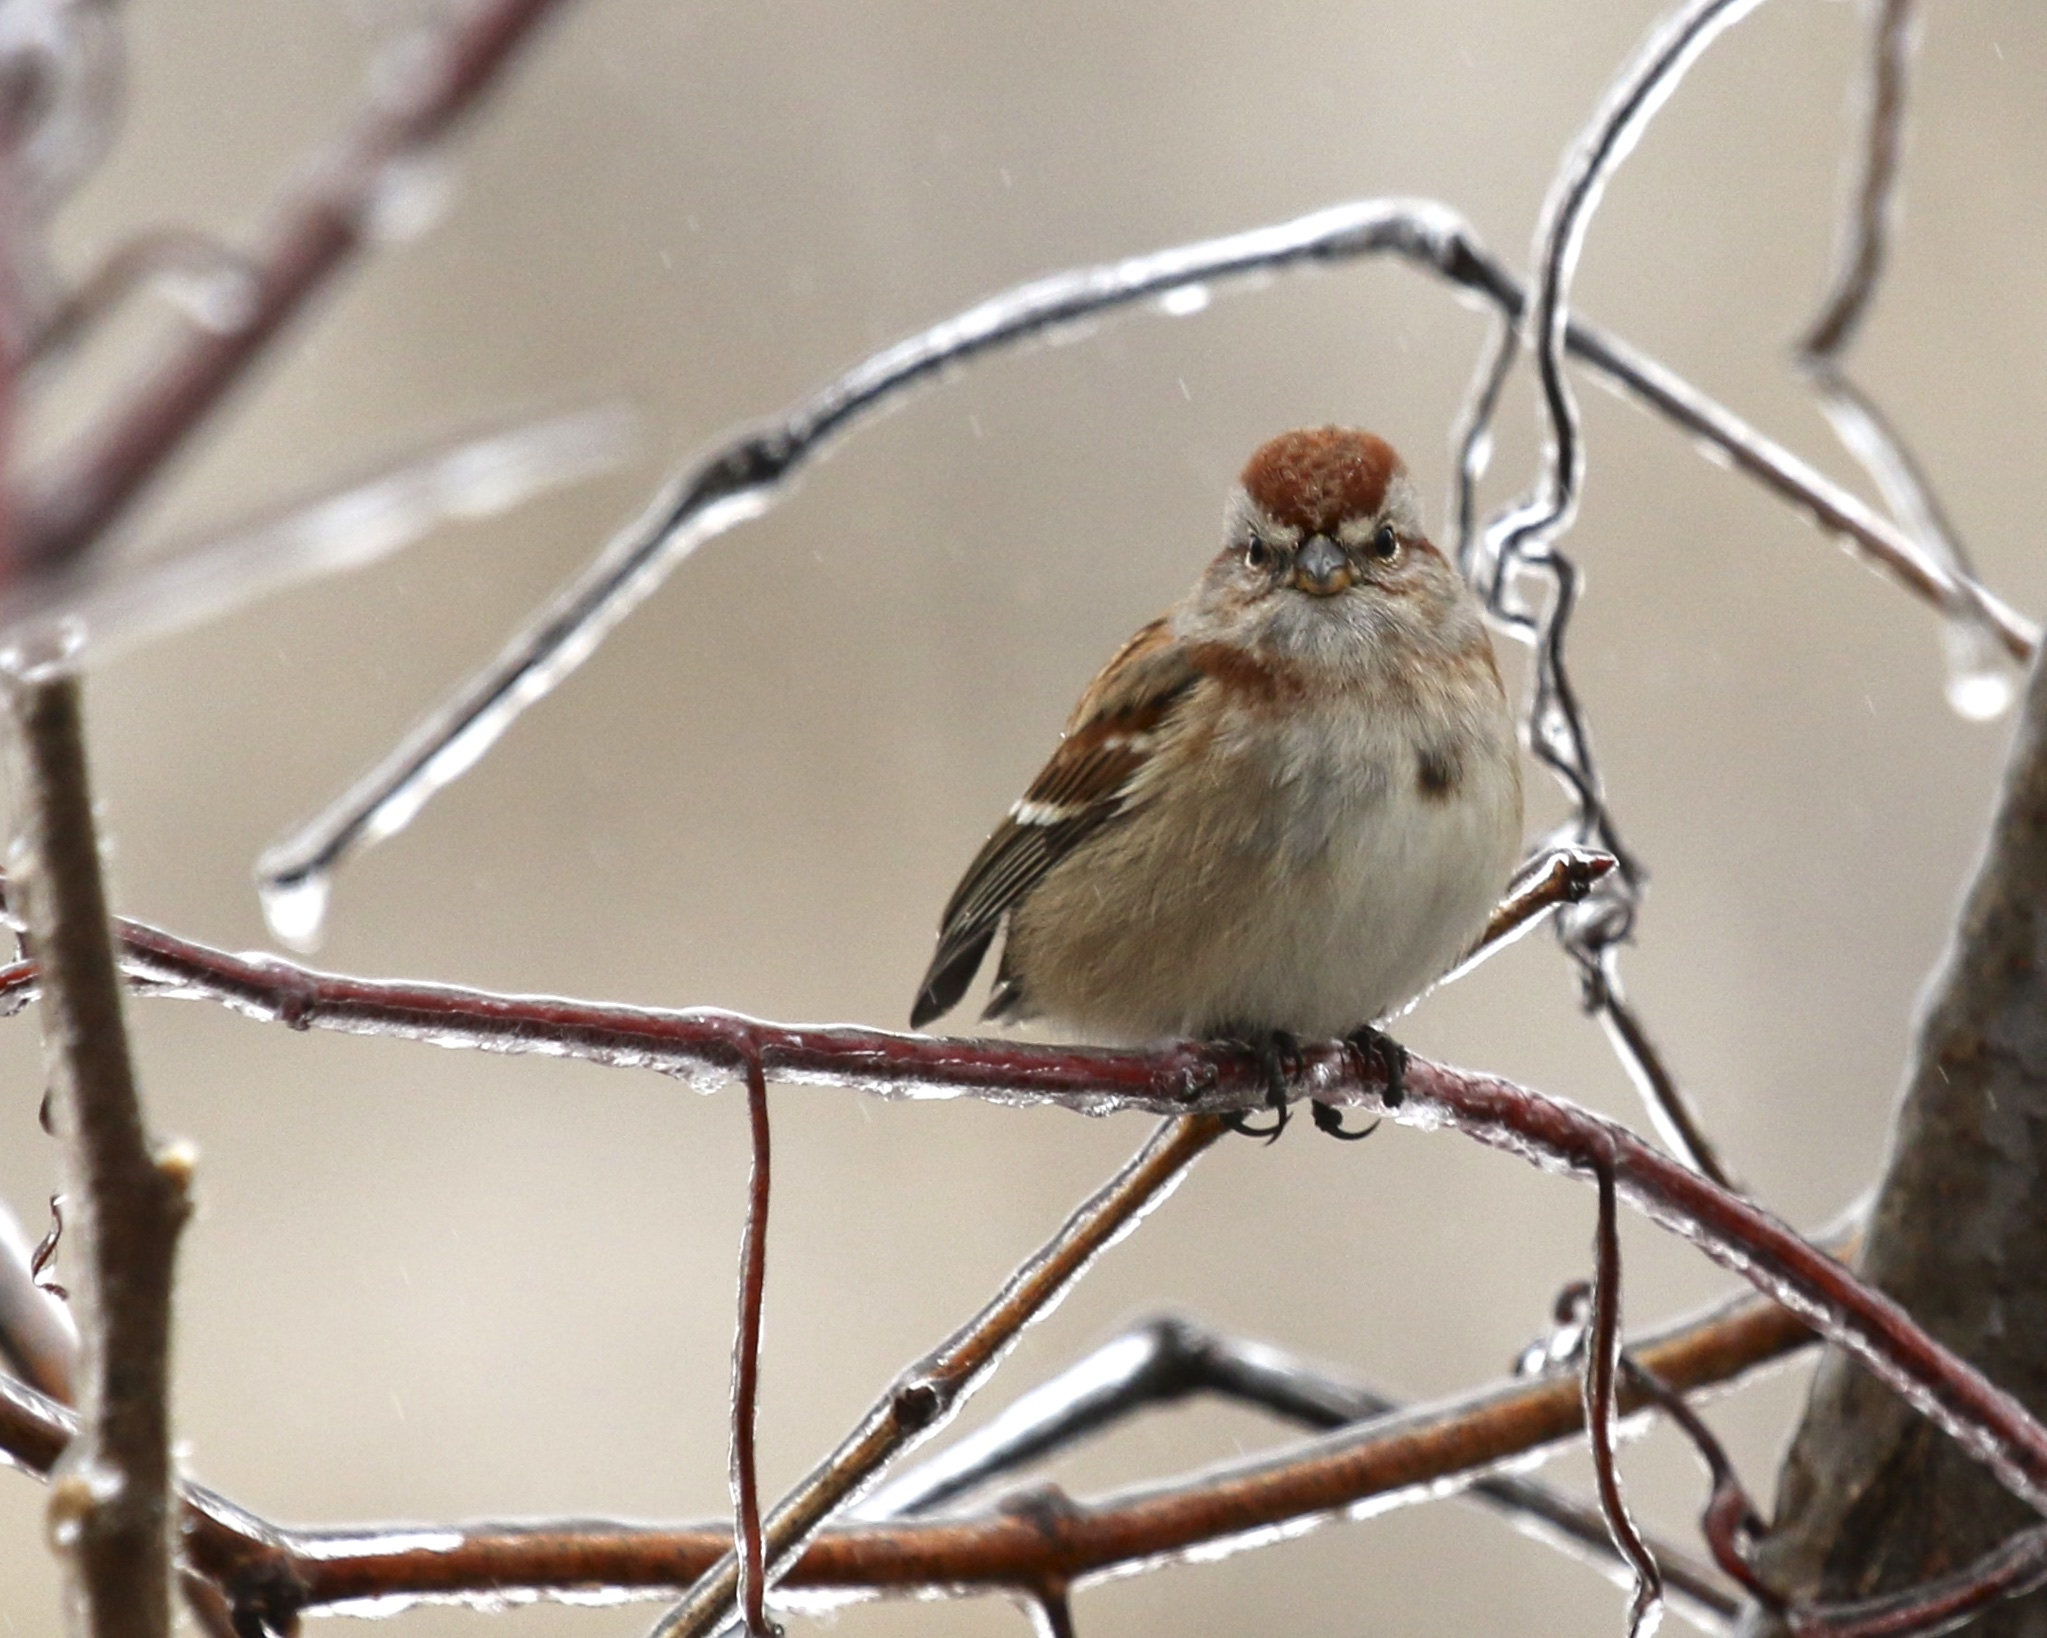 ~My latest favorite - American Tree Sparrow framed in icy branches. Black Dirt Region, 12/29/15.~